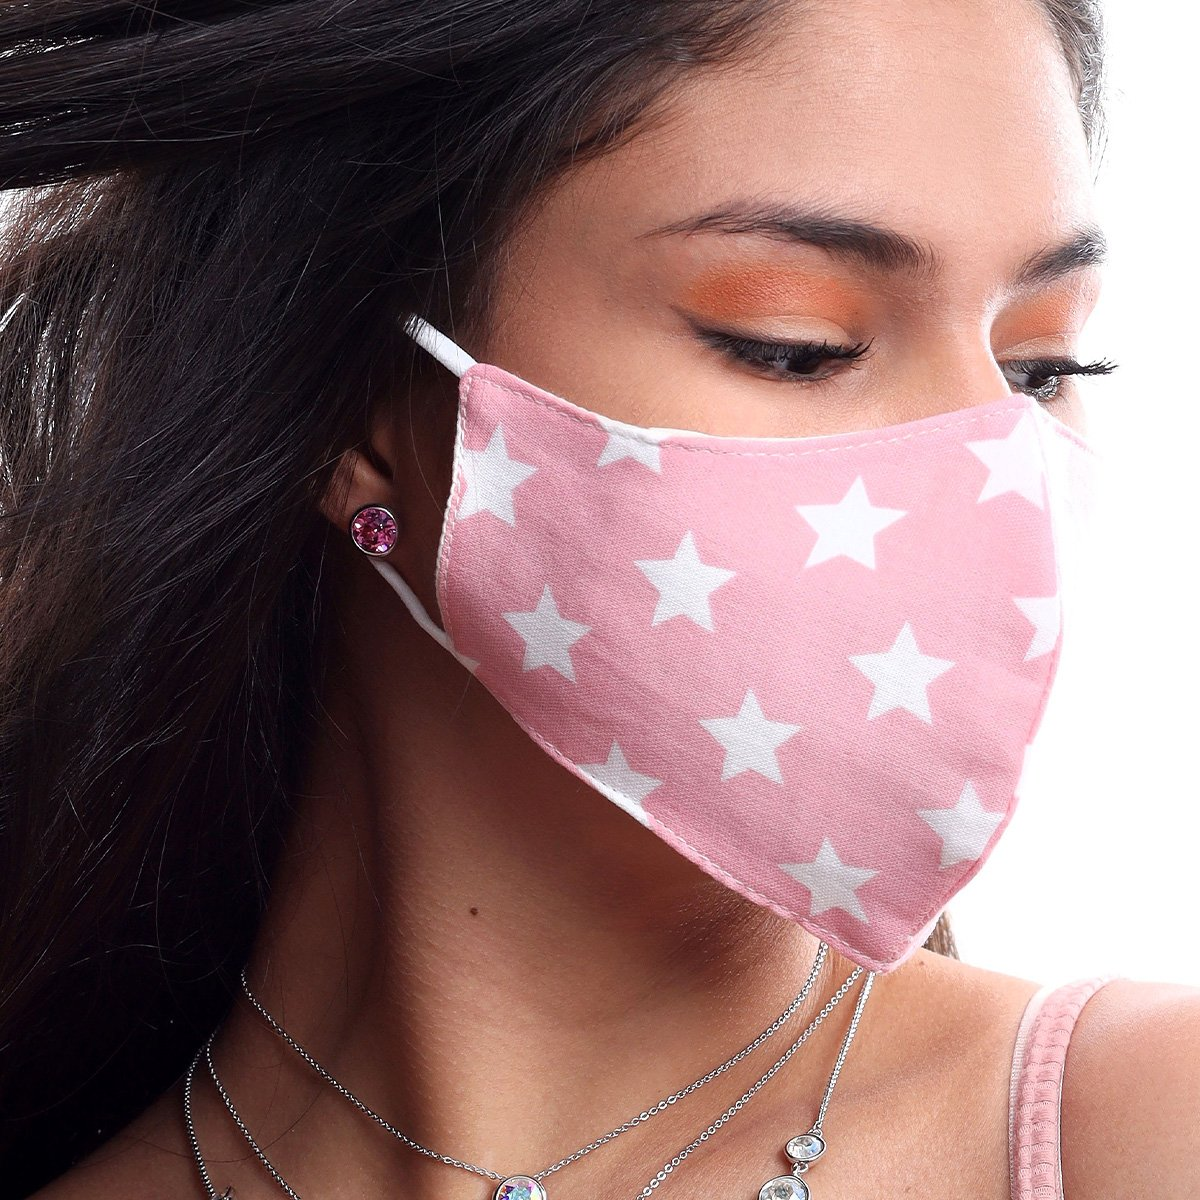 STARS FACE MASK PINK ACCESSORY - FOREVER Forevercrystals